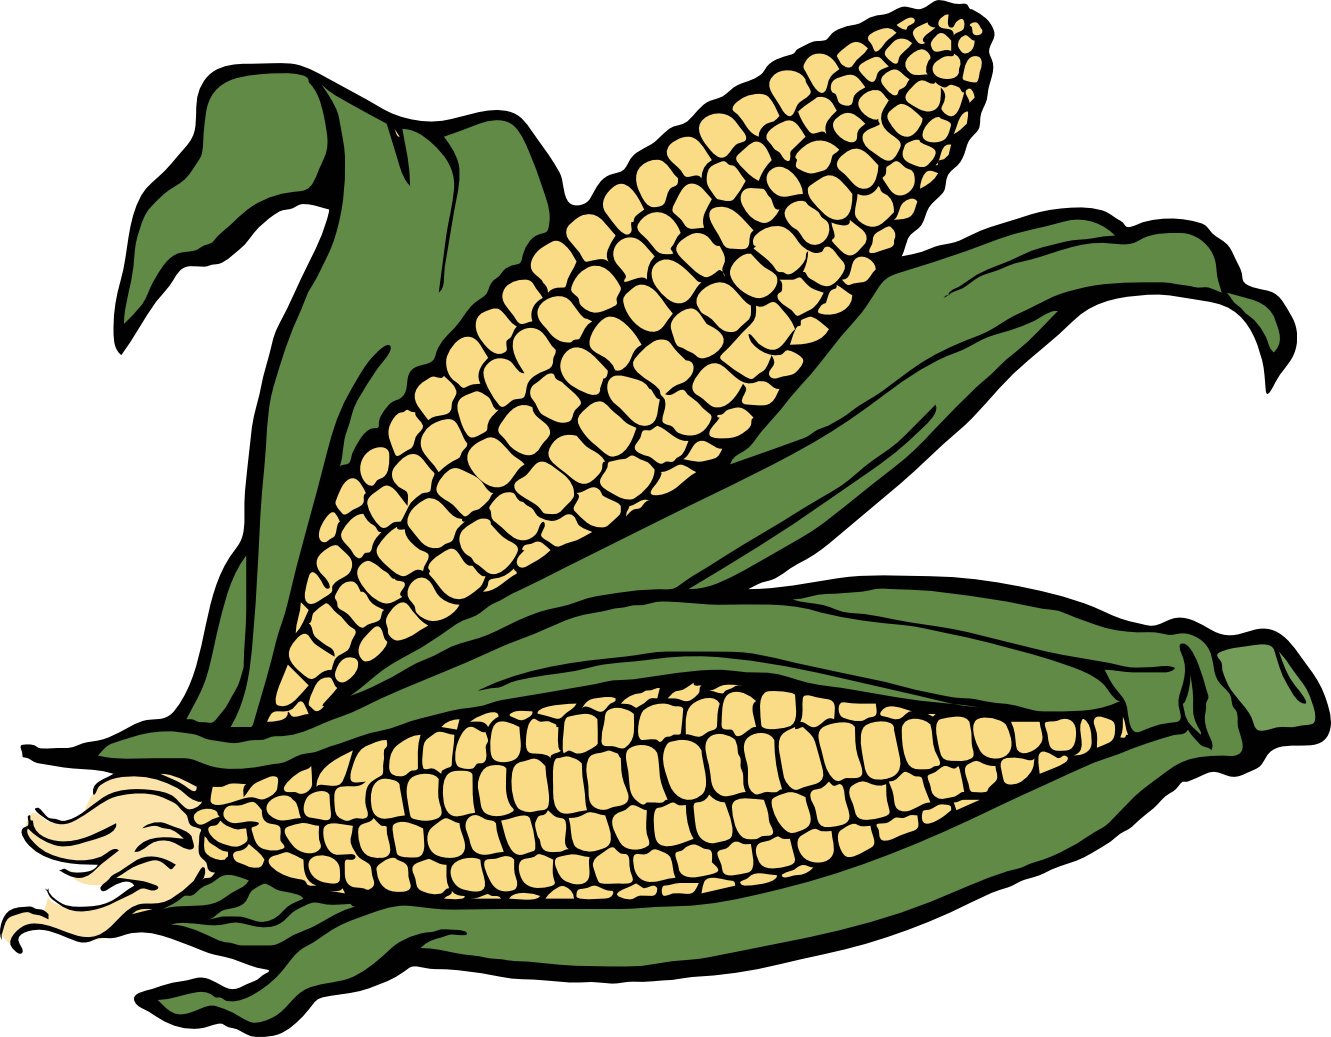 Corn clipart small. Free indian download clip